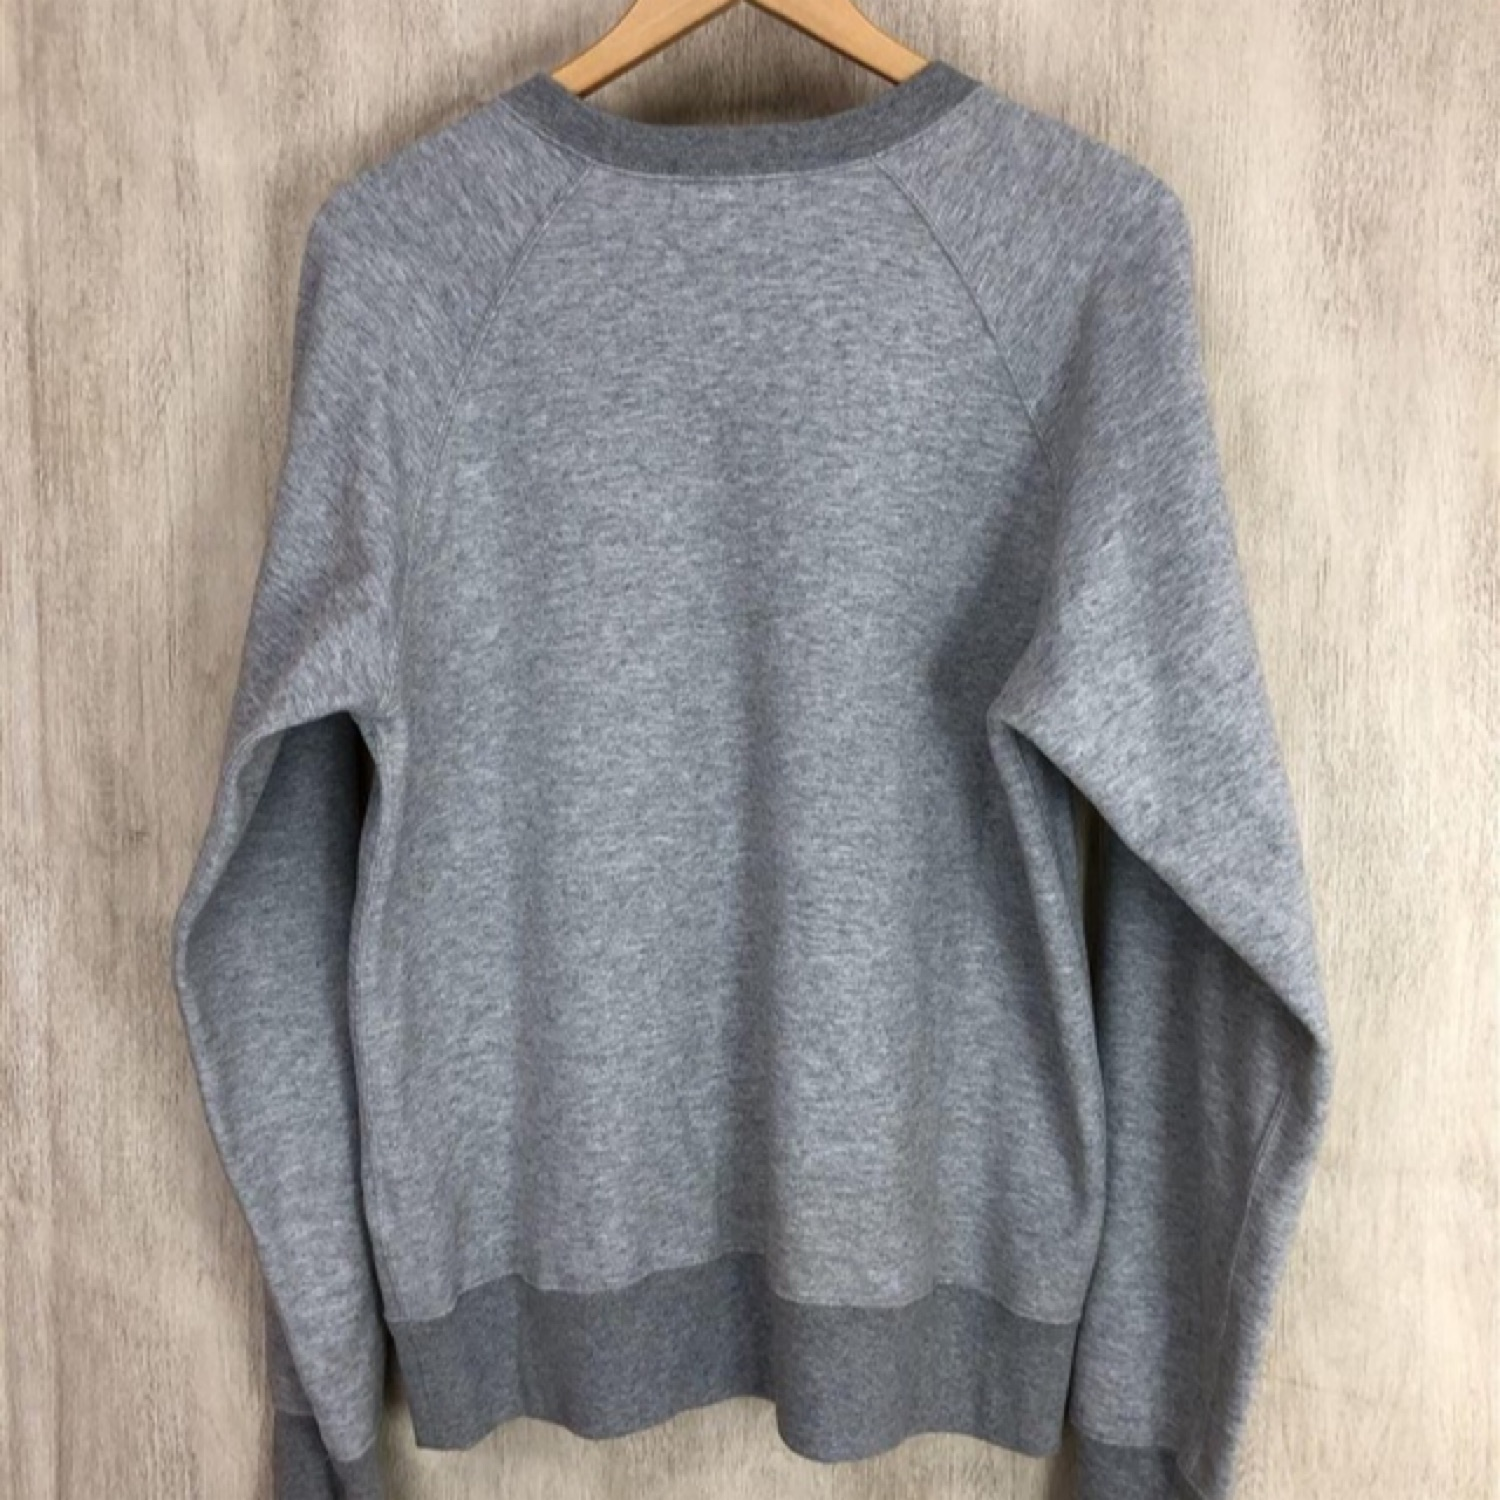 Bape Grey Crewneck